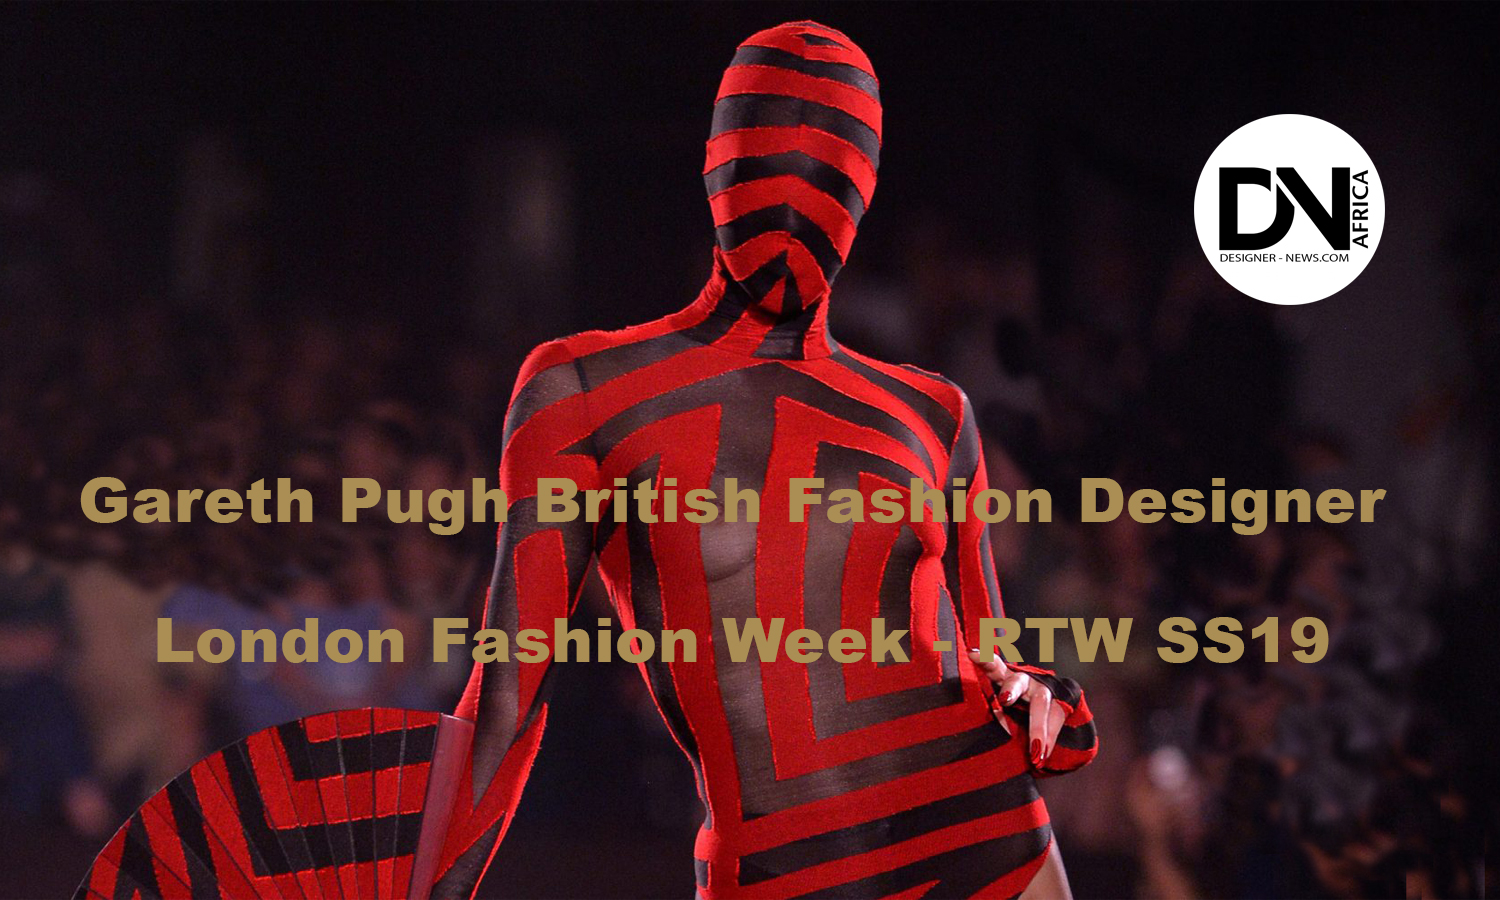 AFRICAN FASHION STYLE MAGAZINE - Gareth Pugh British Fashion Designer  AFRICAN FASHION STYLE MAGAZINE - Gareth Pugh British Fashion Designer  London Fashion Week catwalk-judy-blame - RTW S19 RTW LONDON FASHION WEEK - Photographer DAN NGU - Media Partner DN AFRICA - STUDIO 24 NIGERIA - STUDIO 24 INTERNATIONAL - Ifeanyi Christopher Oputa MD AND CEO OF COLVI LIMITED AND STUDIO 24 - CHEVEUX CHERIE and CHEVEUX CHERIE STUDIO BY MARIEME DUBOZ- Fashion Editor Nahomie NOOR COULIBALY